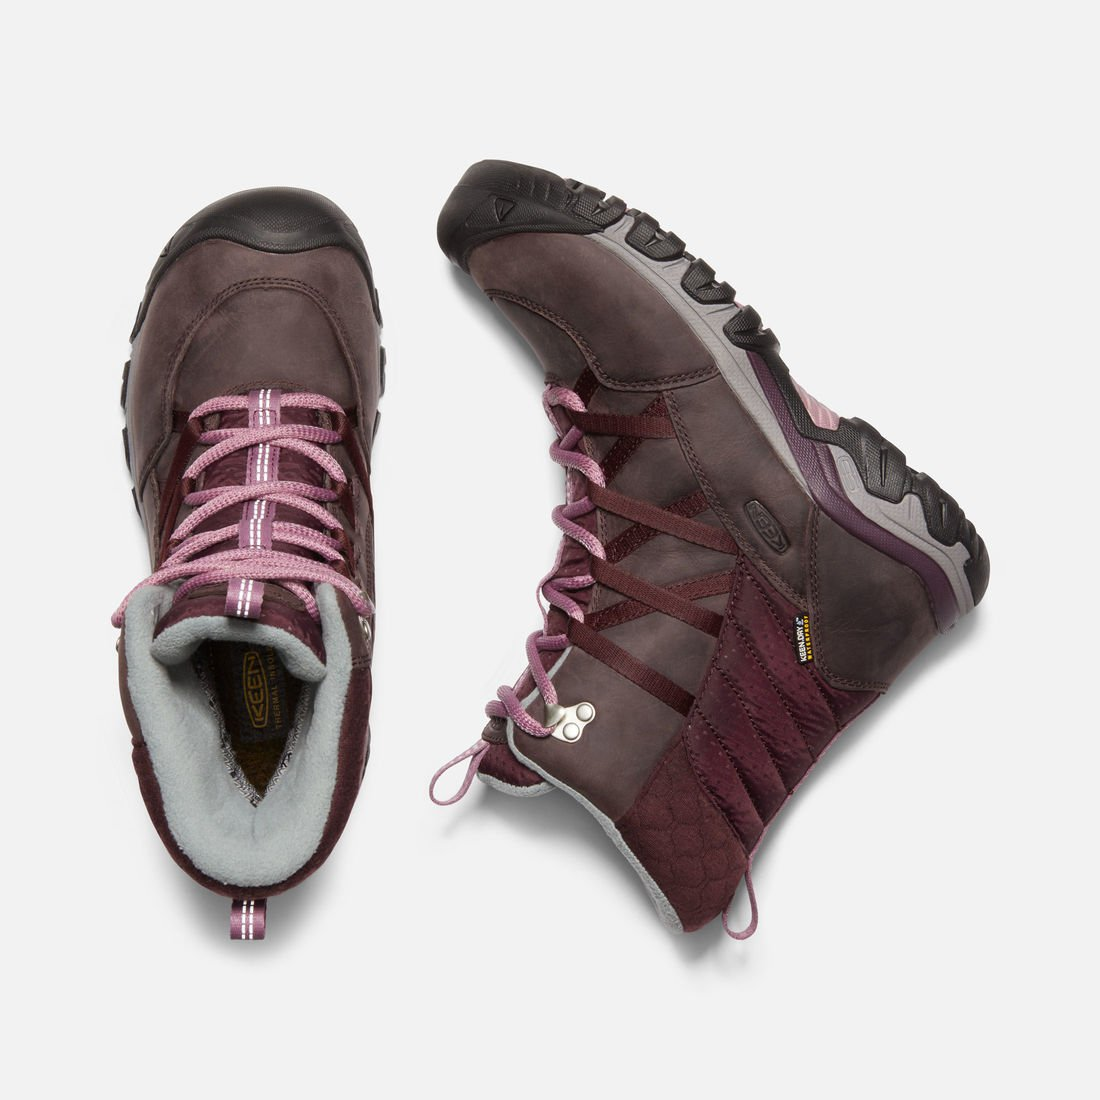 Keen Hoodoo III Lace Up - Trailblazer Outdoors, Pickering